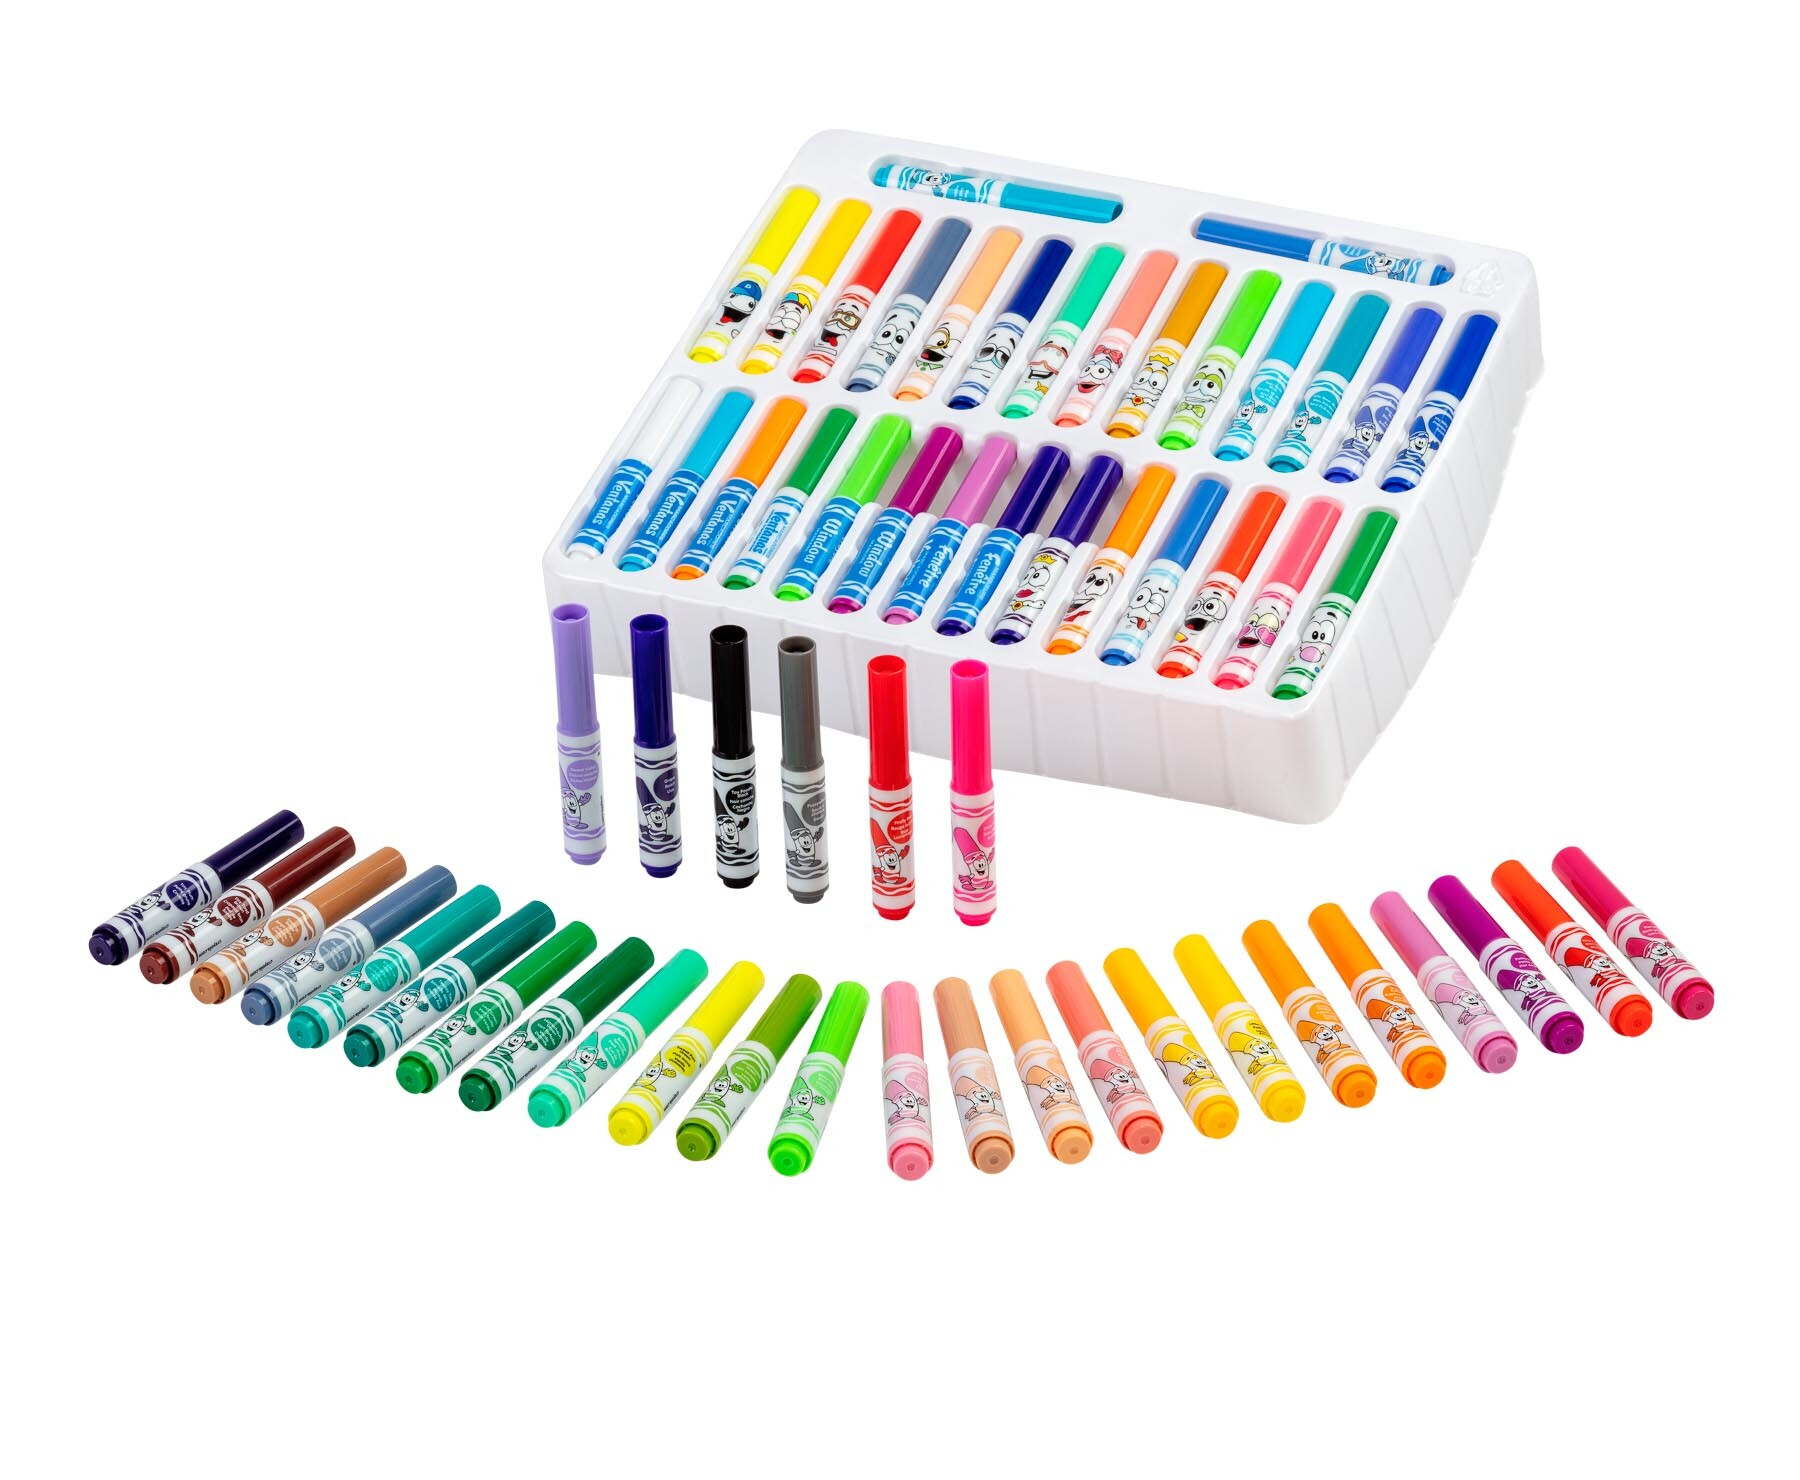 Ultimate Mini Marker set Group without box - Product photography of coloring markers